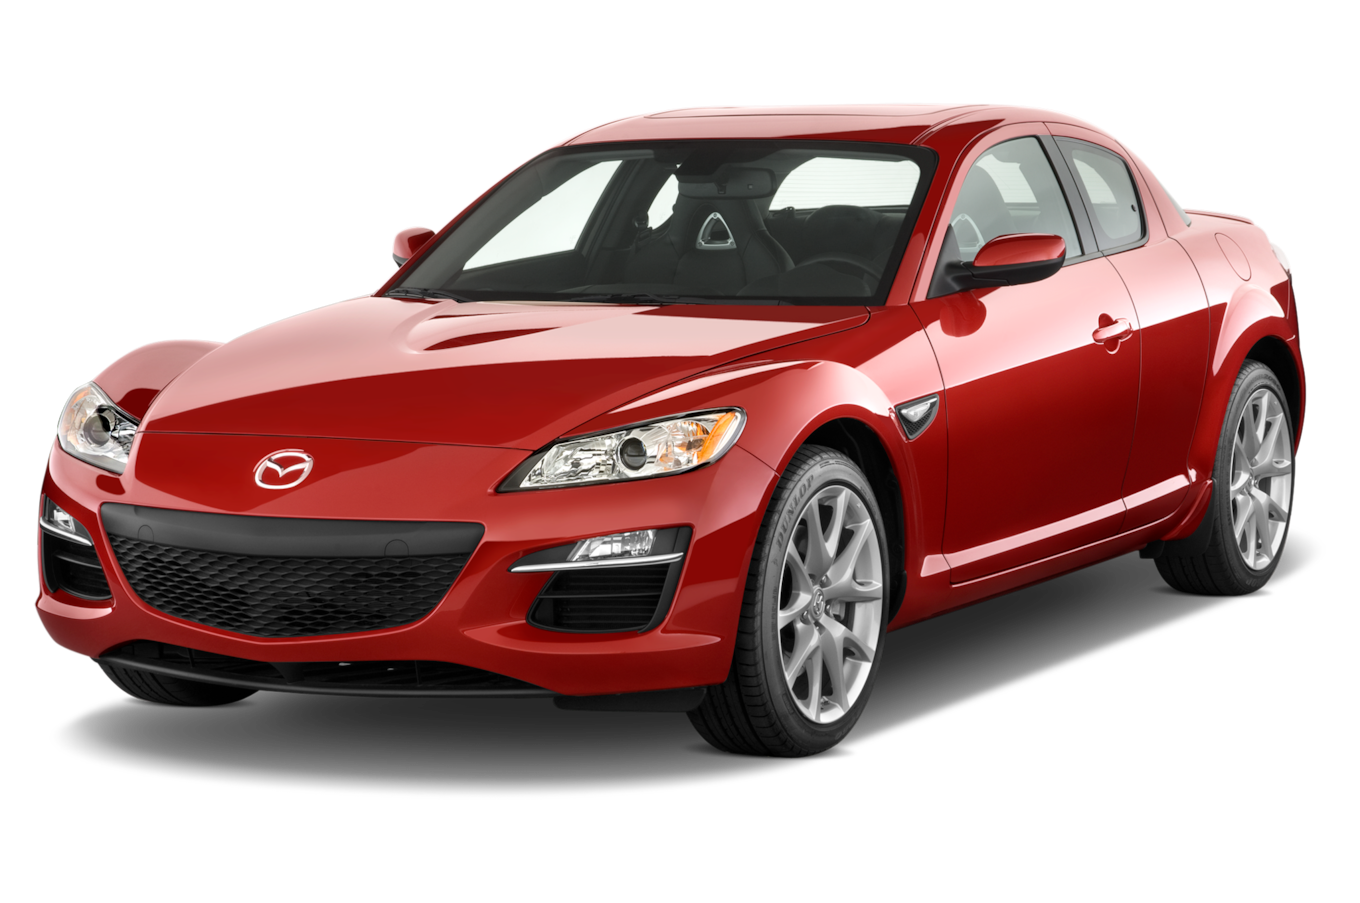 2010 Mazda RX8 Reviews and Rating  Motor Trend